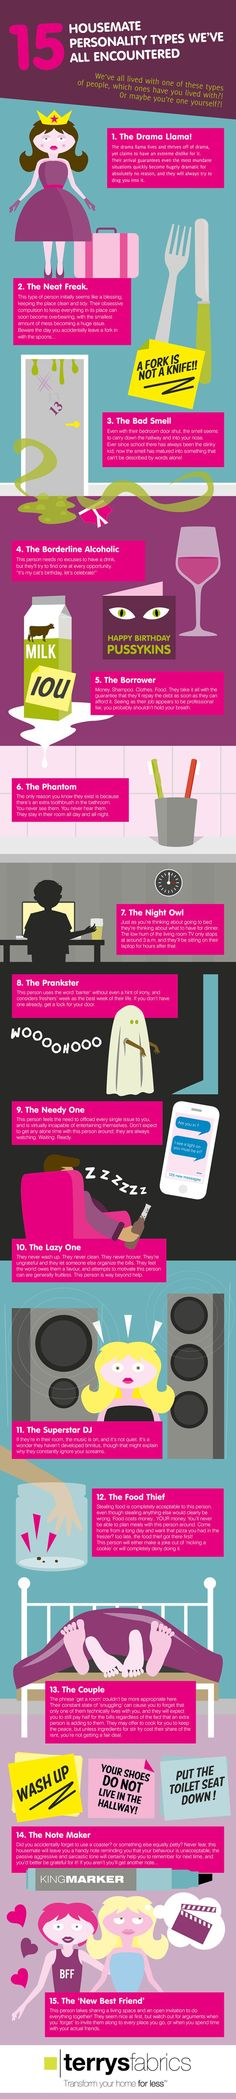 15 Housemate Personality Types We've All Encountered  [by Terrys Fabrics -- via #tipsographic]. More at tipsographic.com